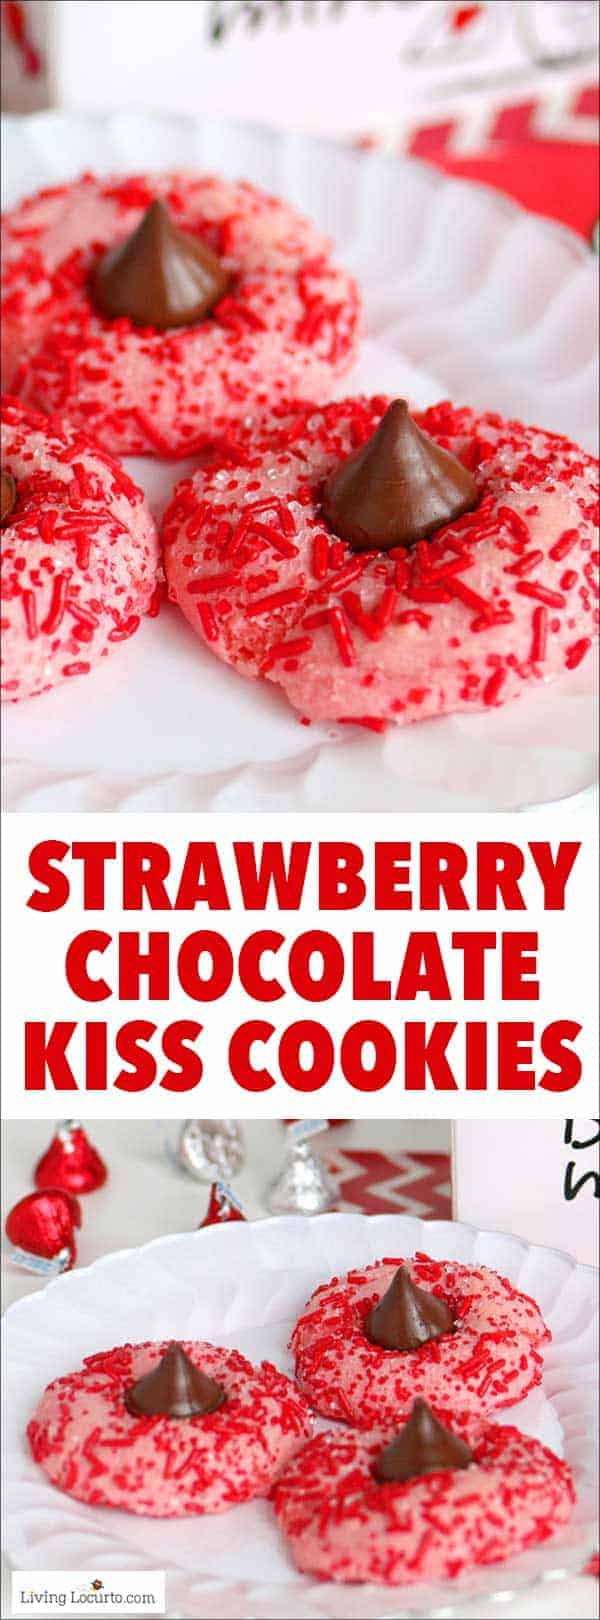 Easy Strawberry ChocolateKiss Cookies recipe! Strawberry cake mix thumbprint cookies rolled in red candy sprinkles and with a Hershey's Chocolate Kiss. Cute for Valentine's Day. #cookies #recipe #chocolate